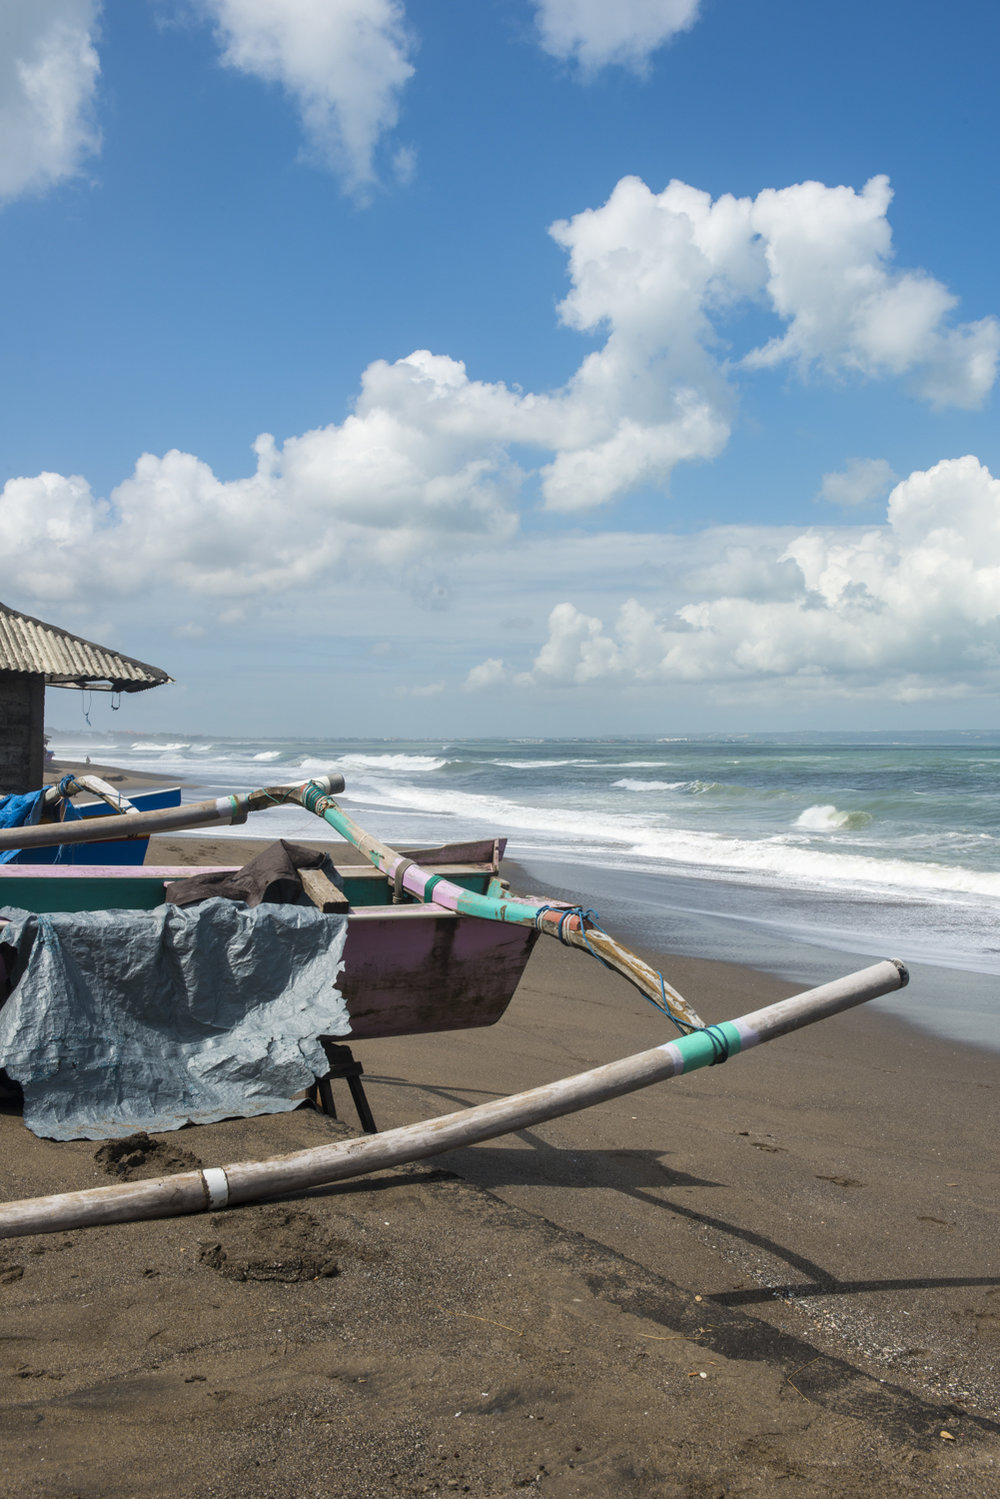 A deserted beach in Bali? Yes, it exists.